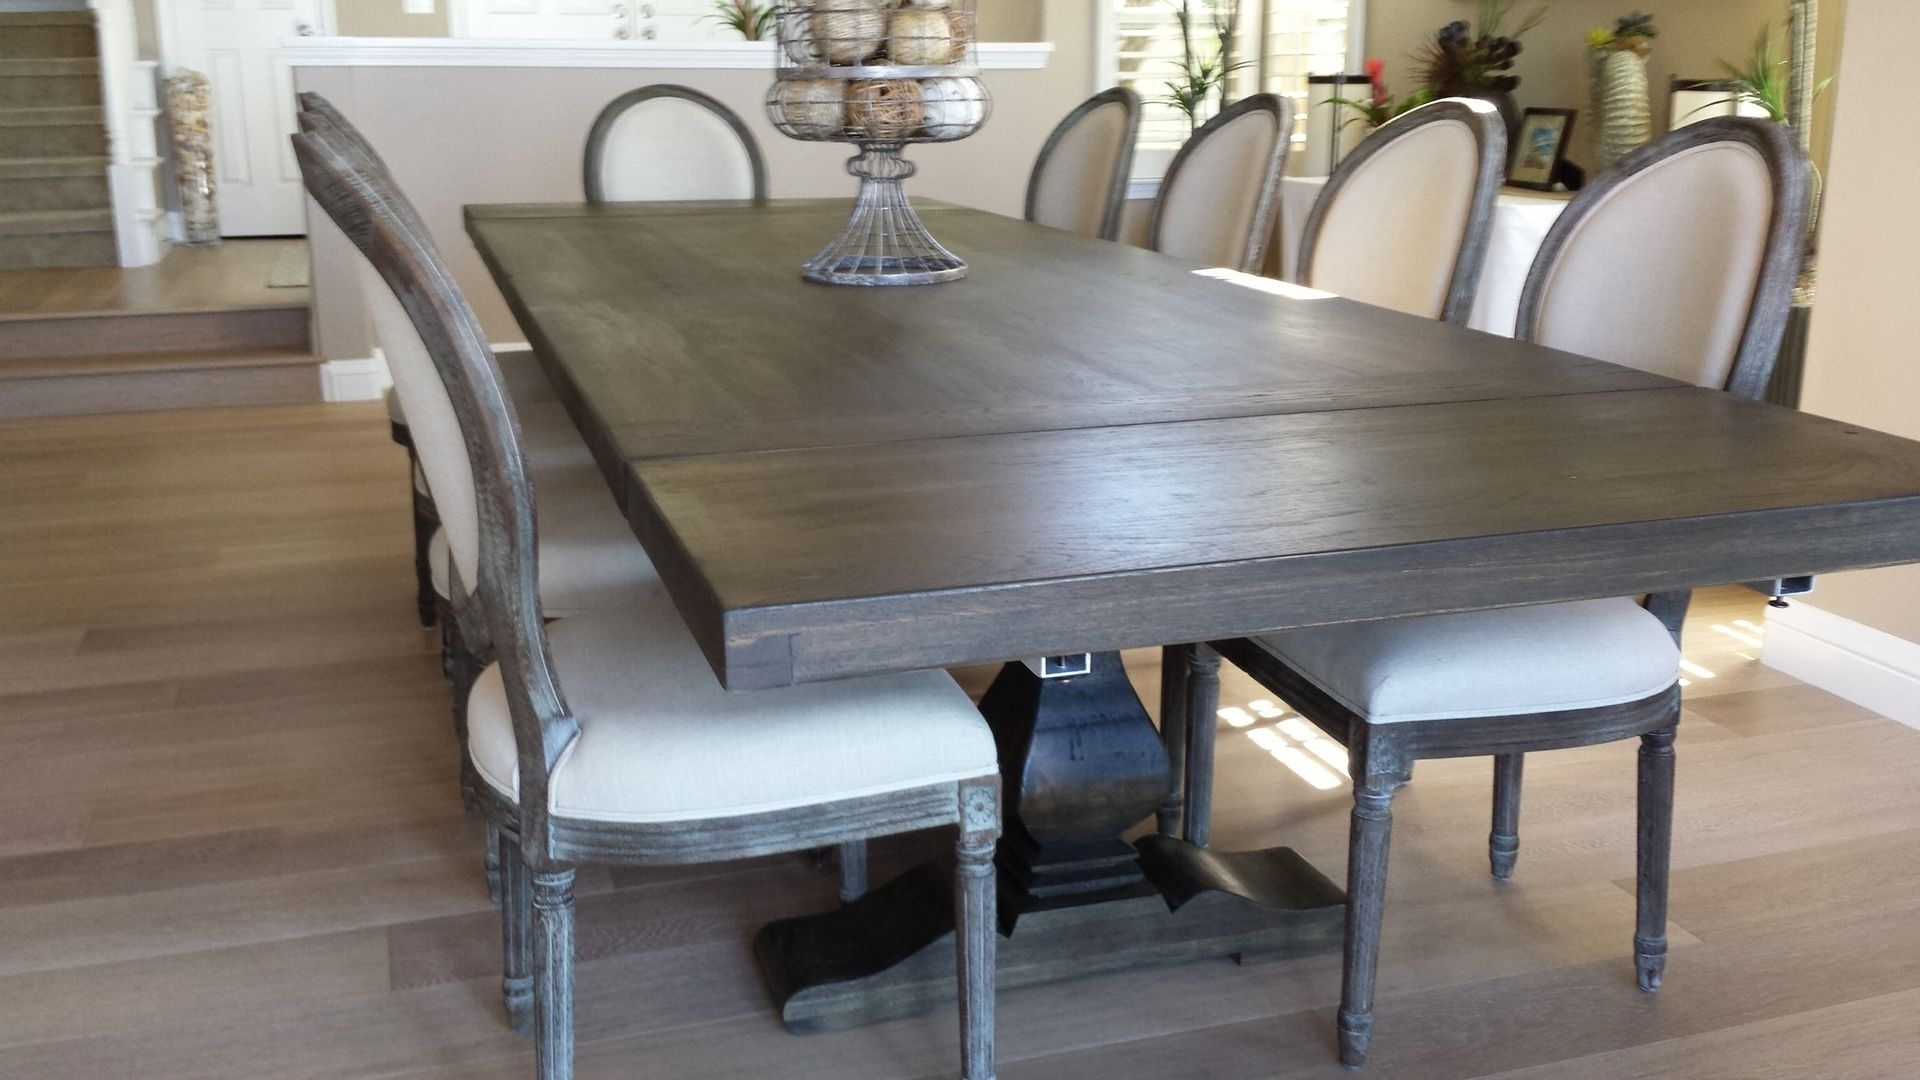 Custommade Regarding Well Liked Extendable Square Dining Tables (View 1 of 25)